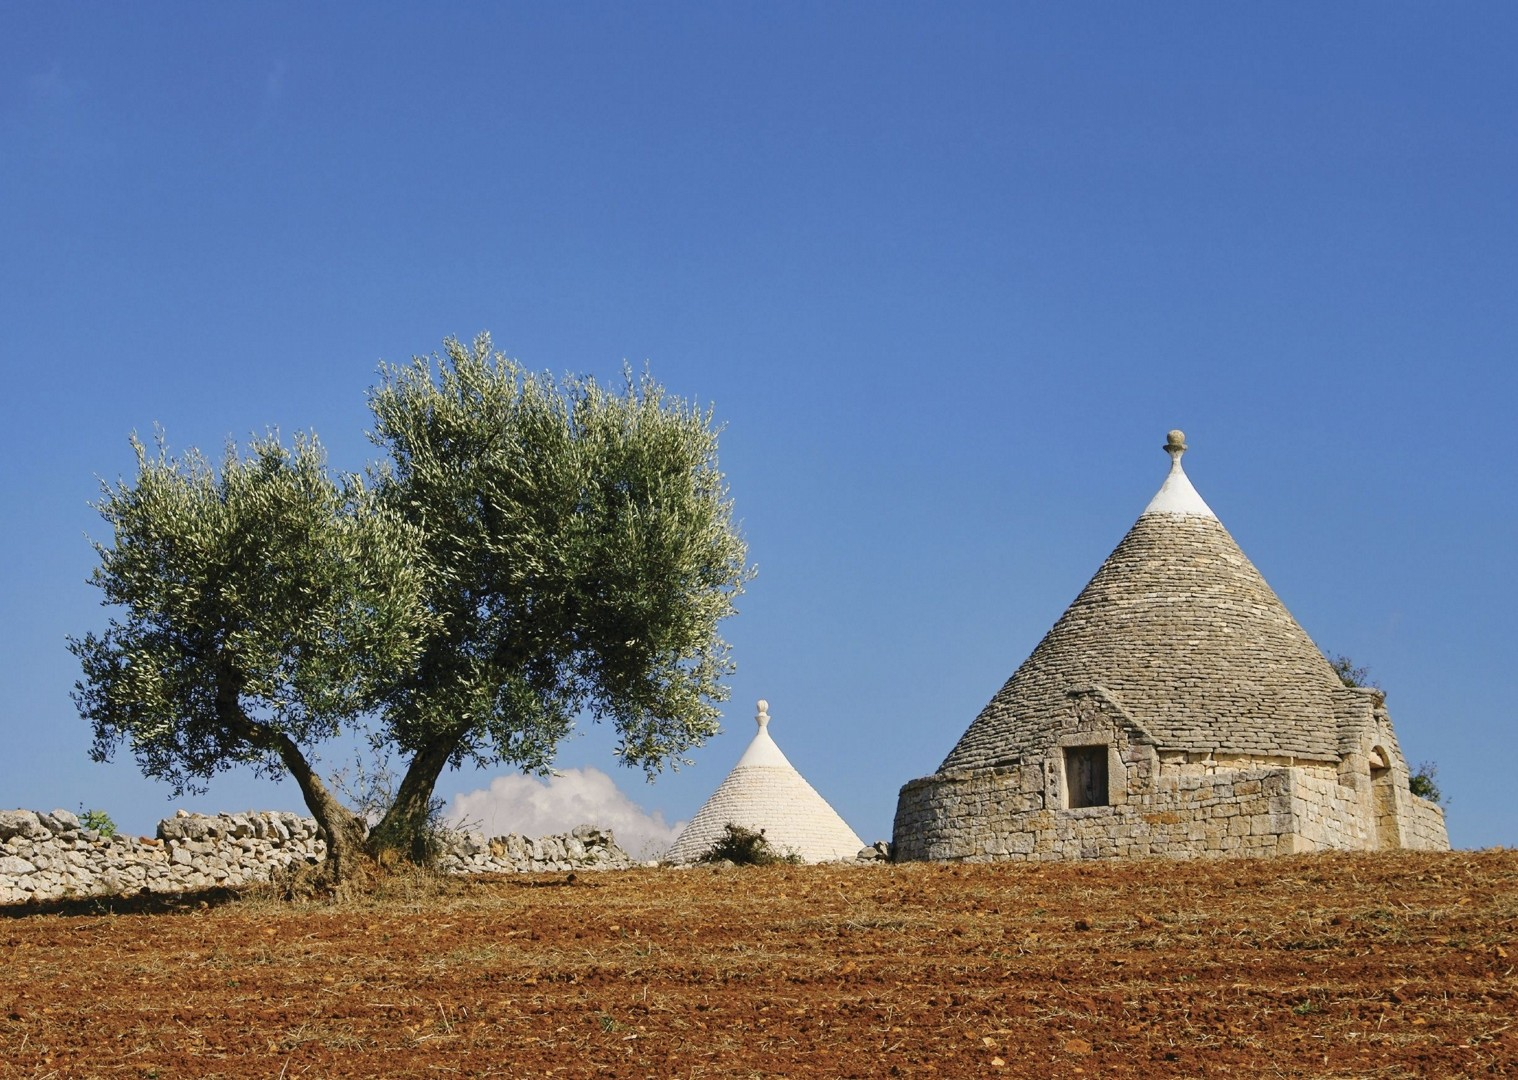 cycling-holiday-italy-puglia-trulli-culture.jpg - Italy - Puglia - Leisure Cycling